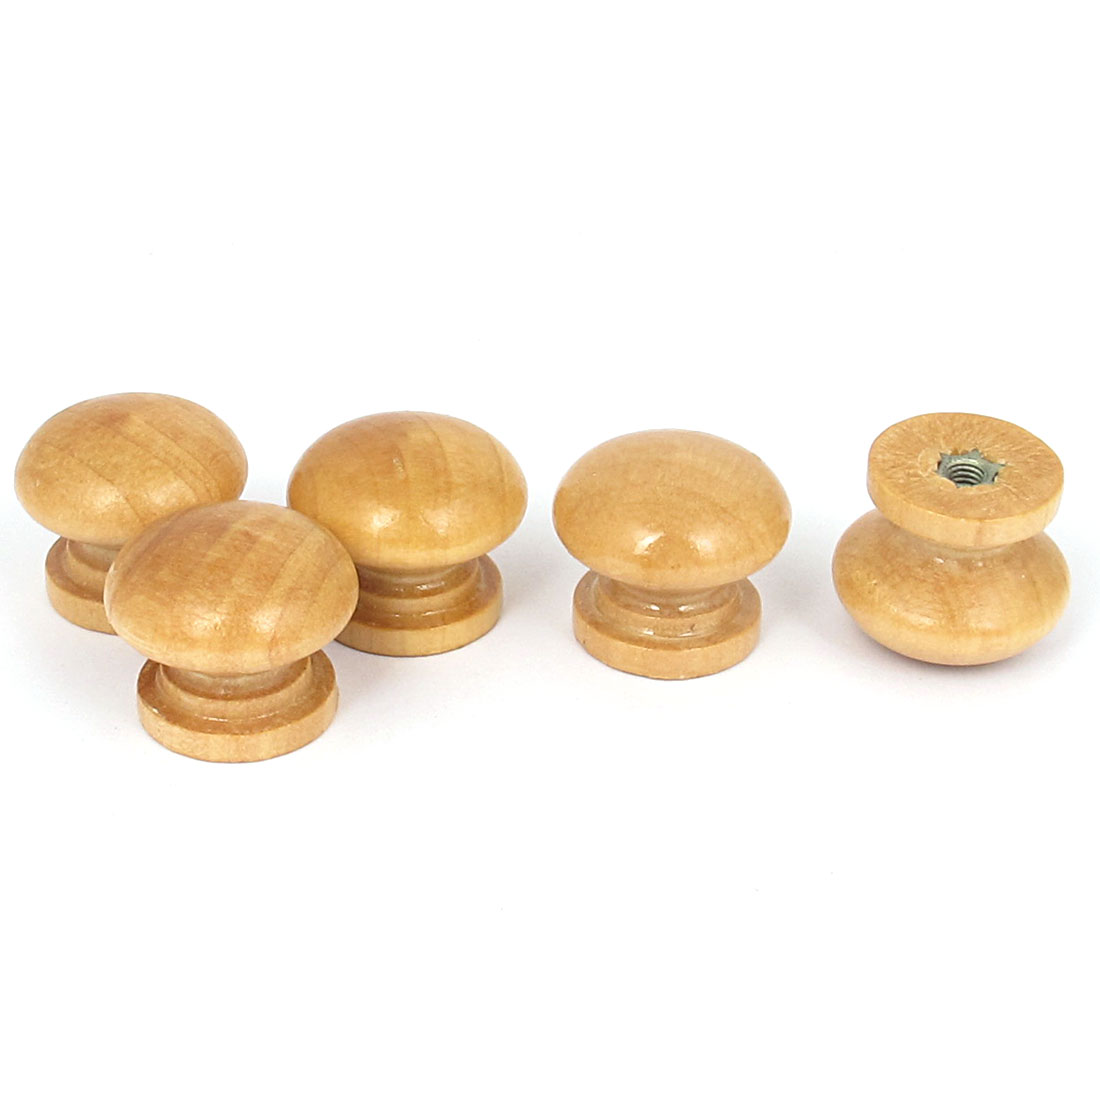 Wooden Round Shaped Home Cabinet Cupboard Drawer Pull Knob Handle Beige 5Pcs